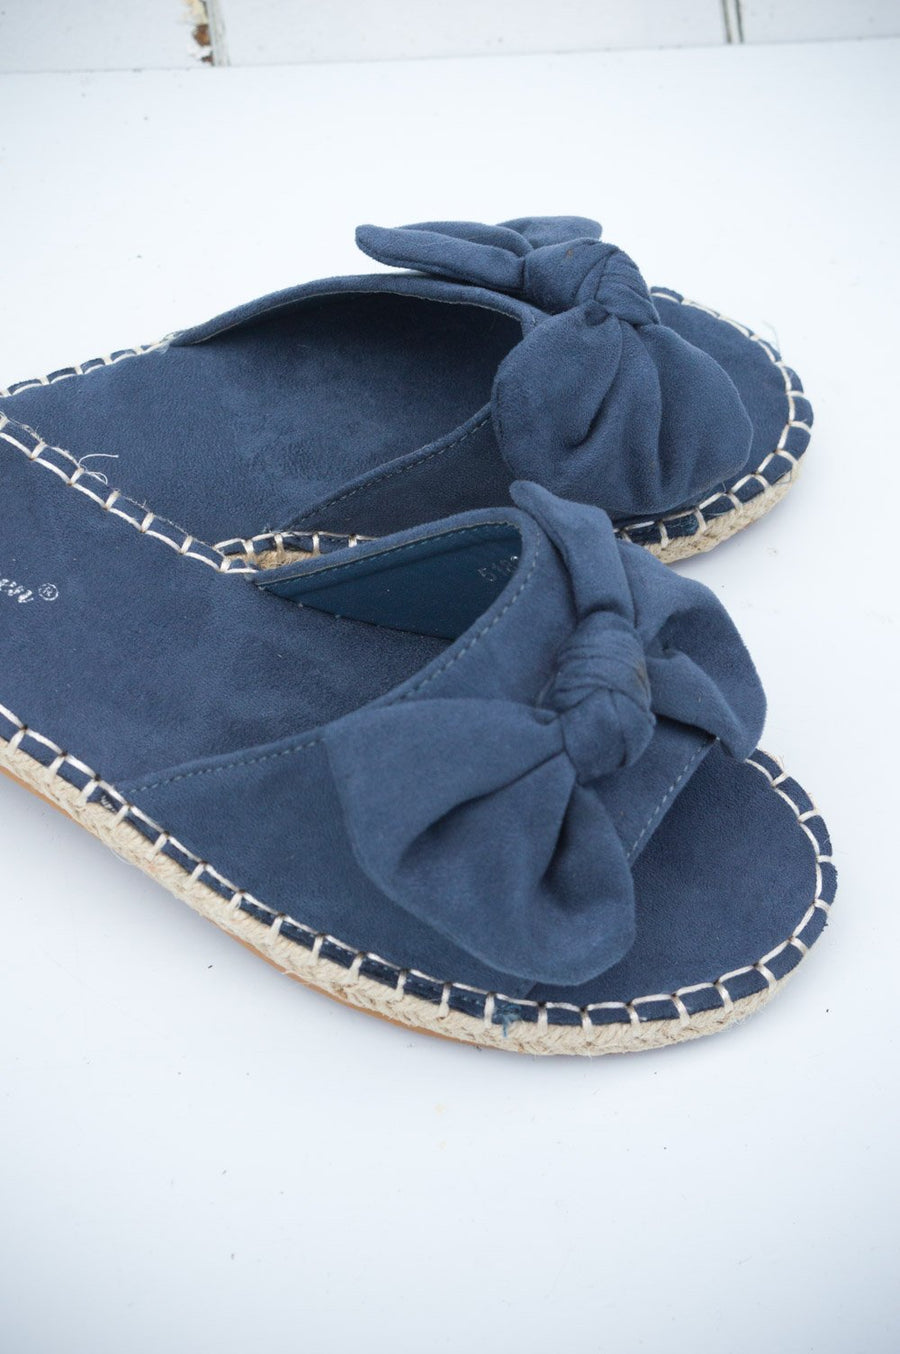 Boathouse Blue Open-toe Espadrilles